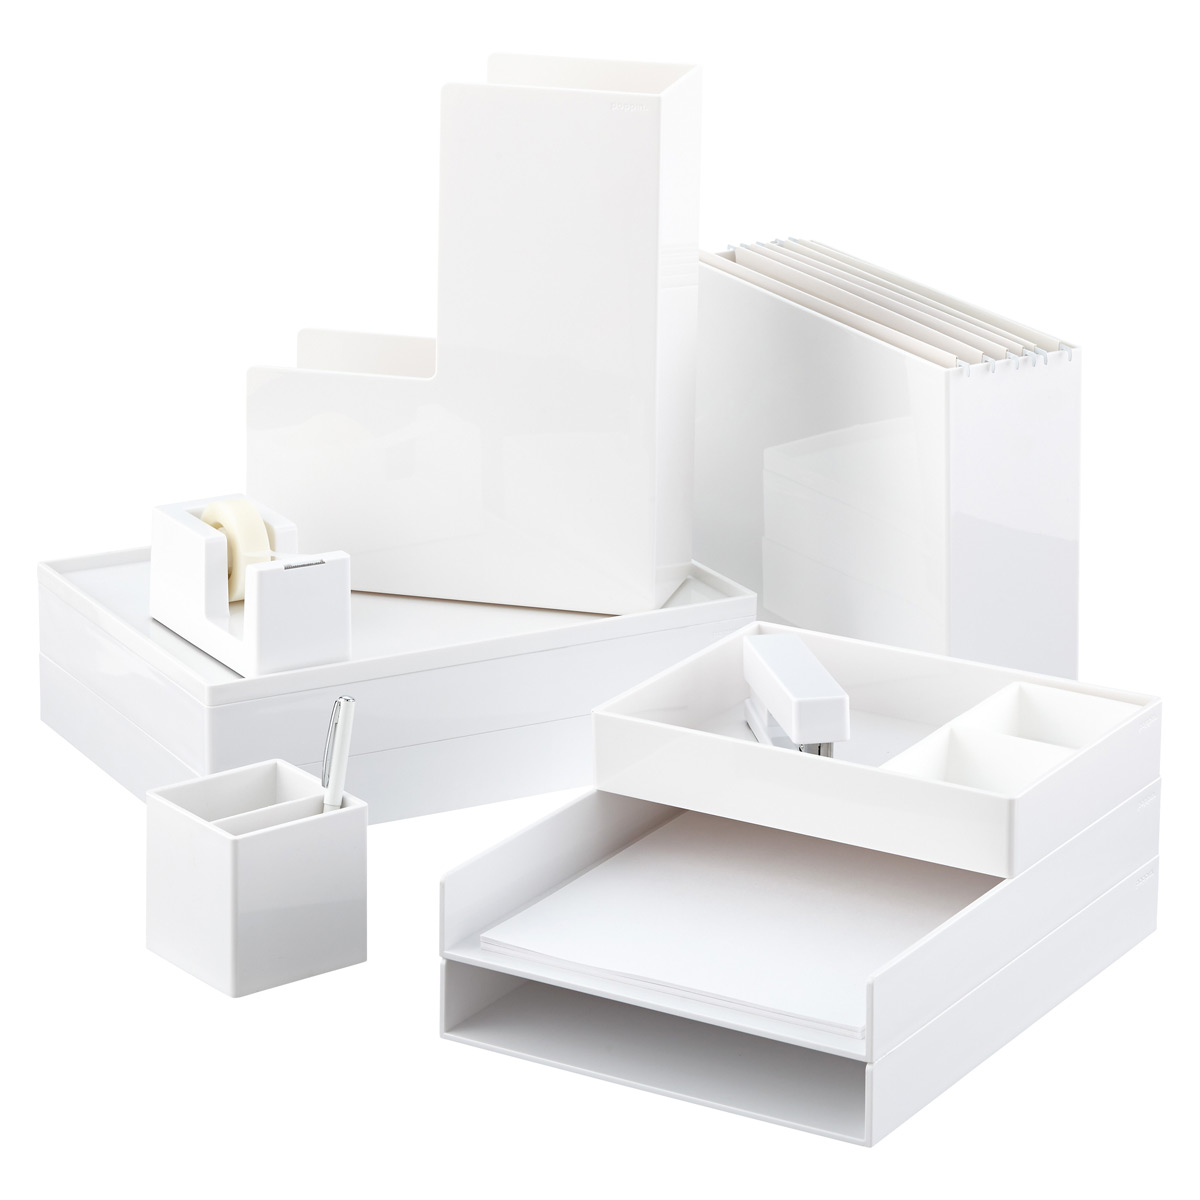 White Poppin Accessory Trays